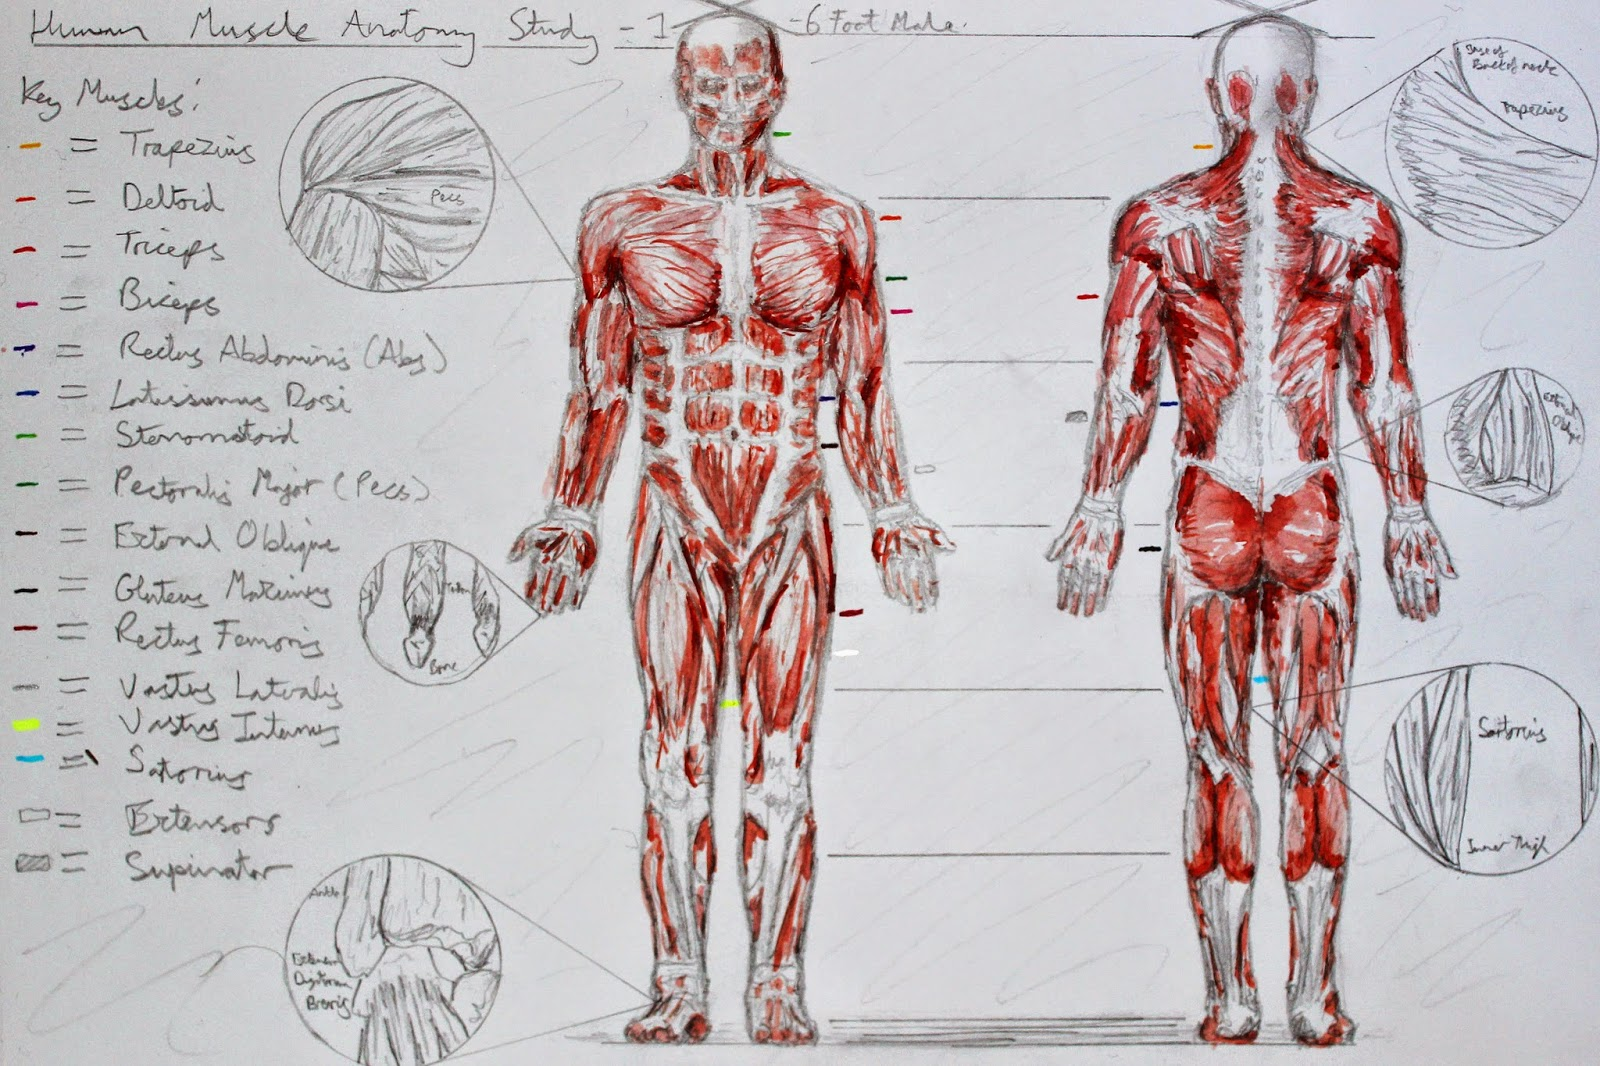 Jason Bartlett: Visual Arts & Animation - Anatomy: Muscle Assignment